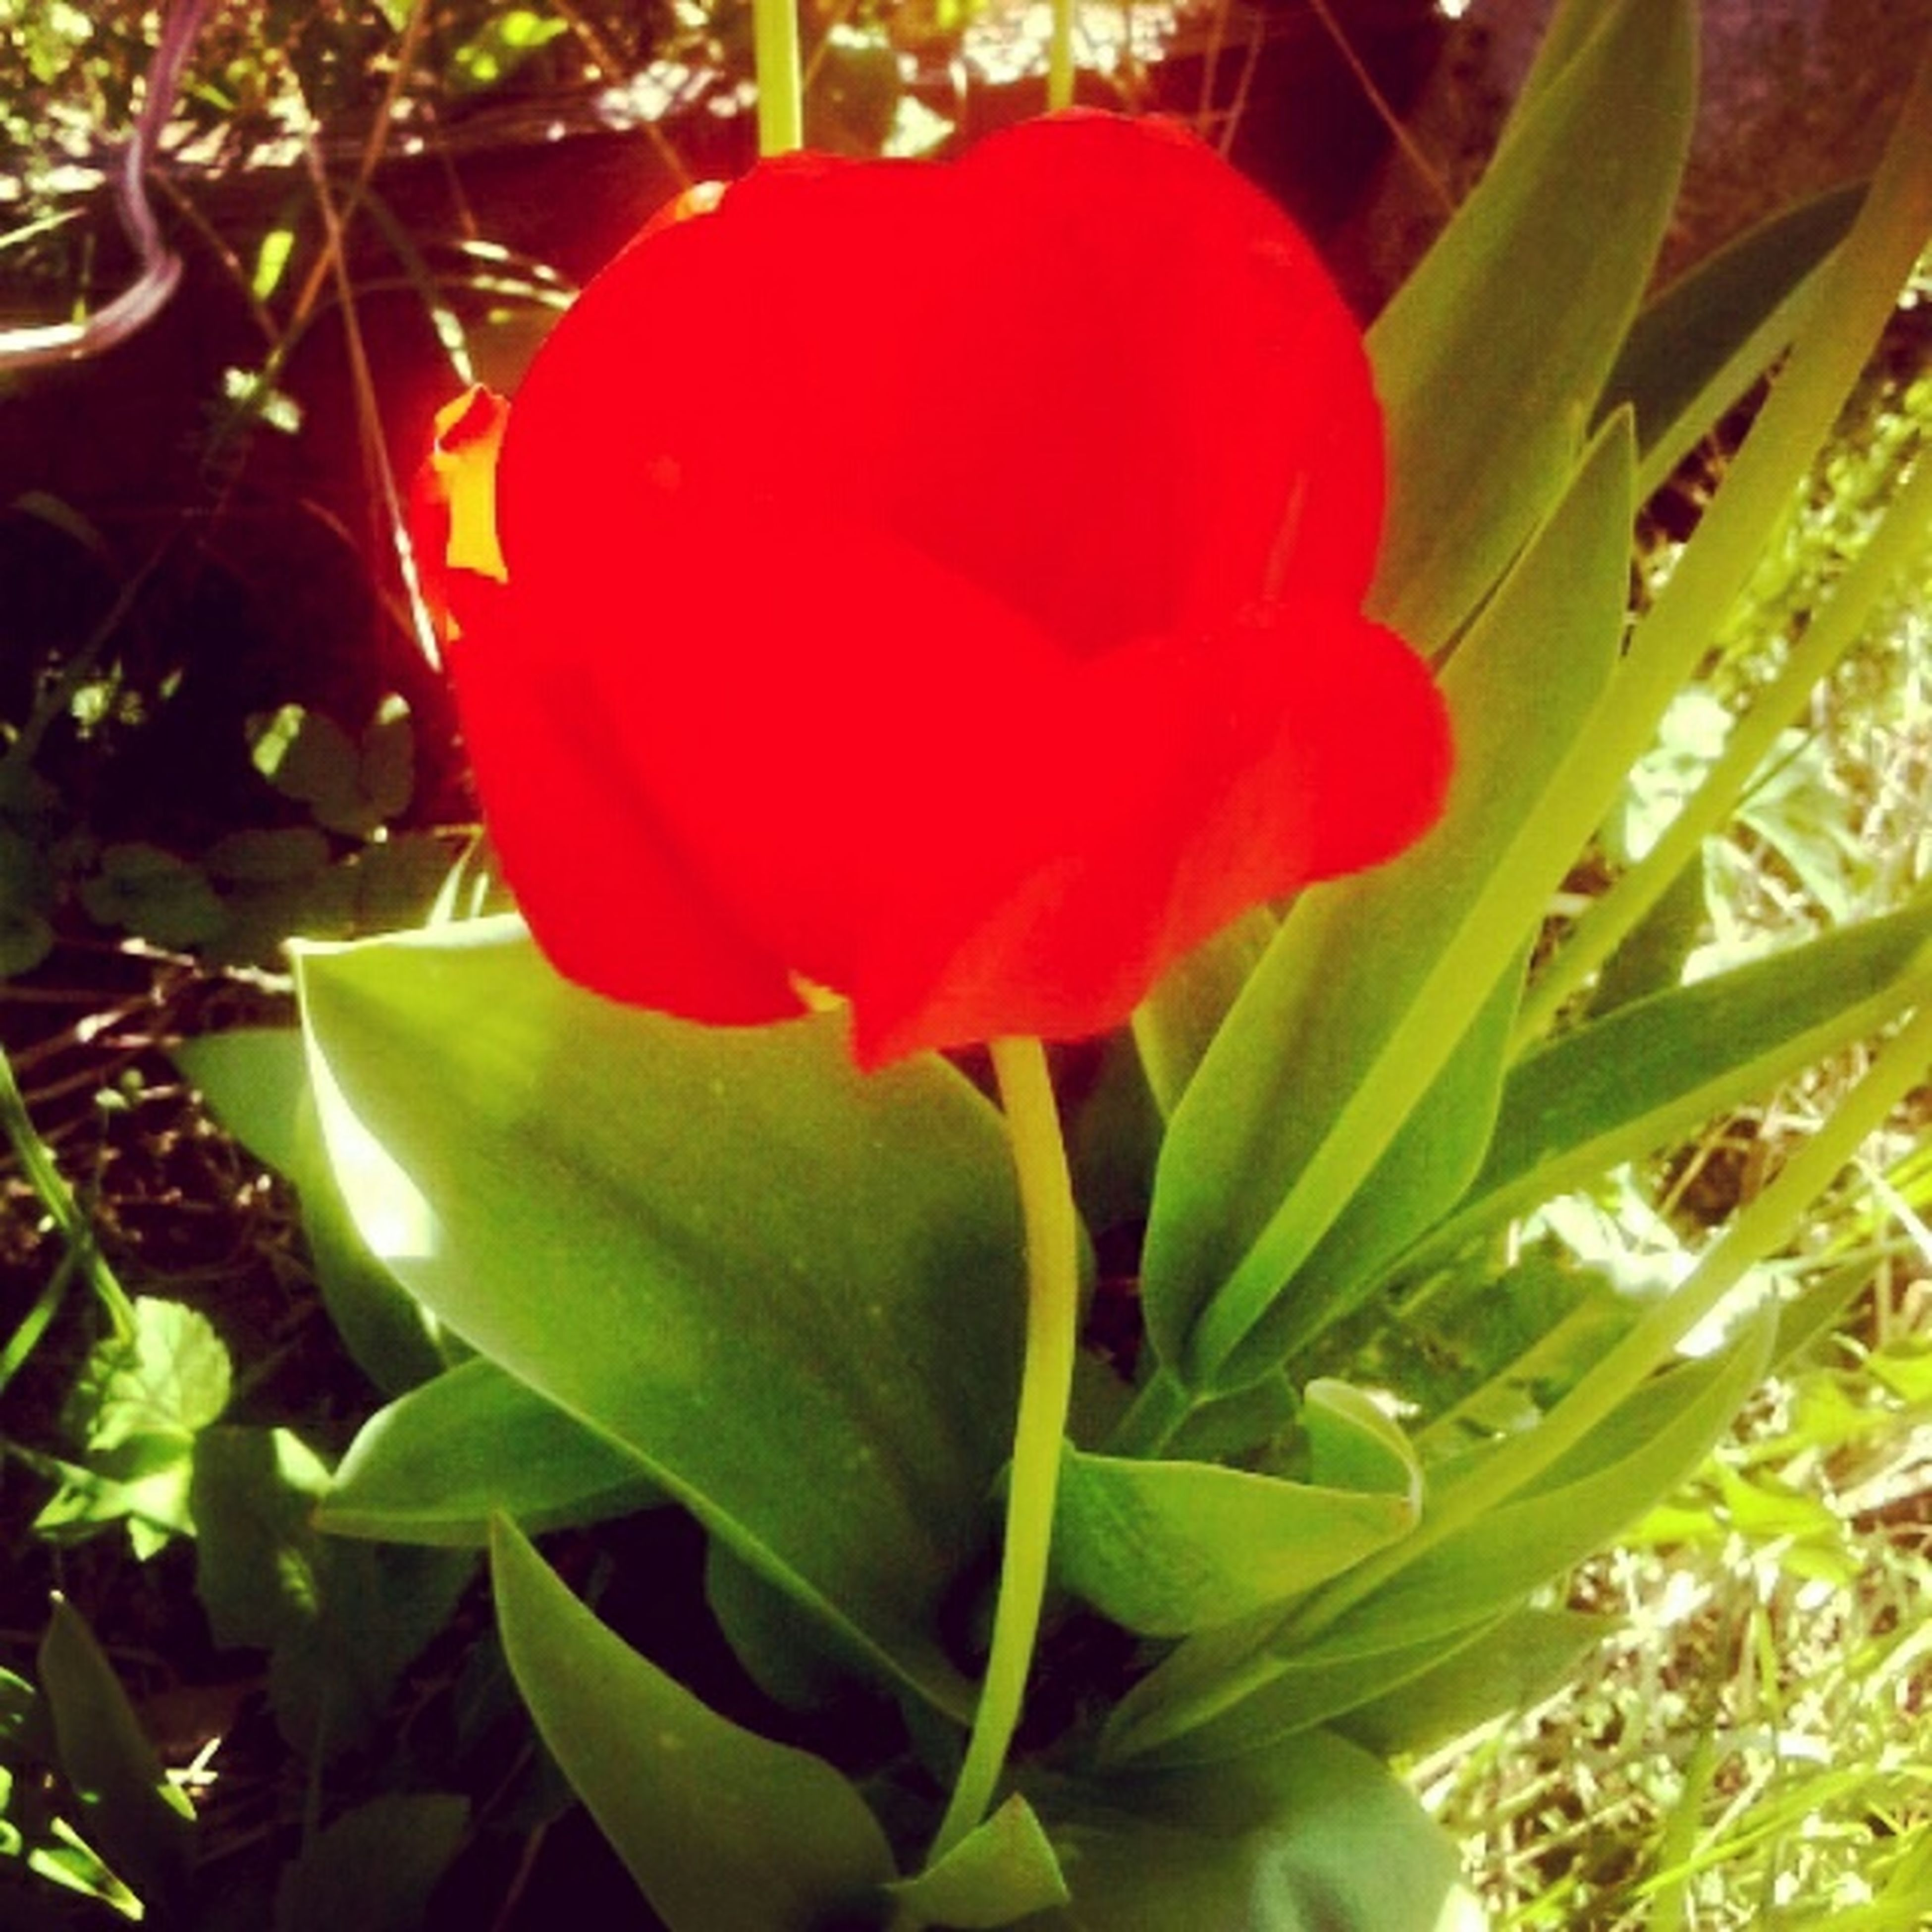 growth, flower, freshness, leaf, red, petal, plant, flower head, beauty in nature, fragility, nature, close-up, green color, blooming, single flower, park - man made space, day, in bloom, no people, outdoors